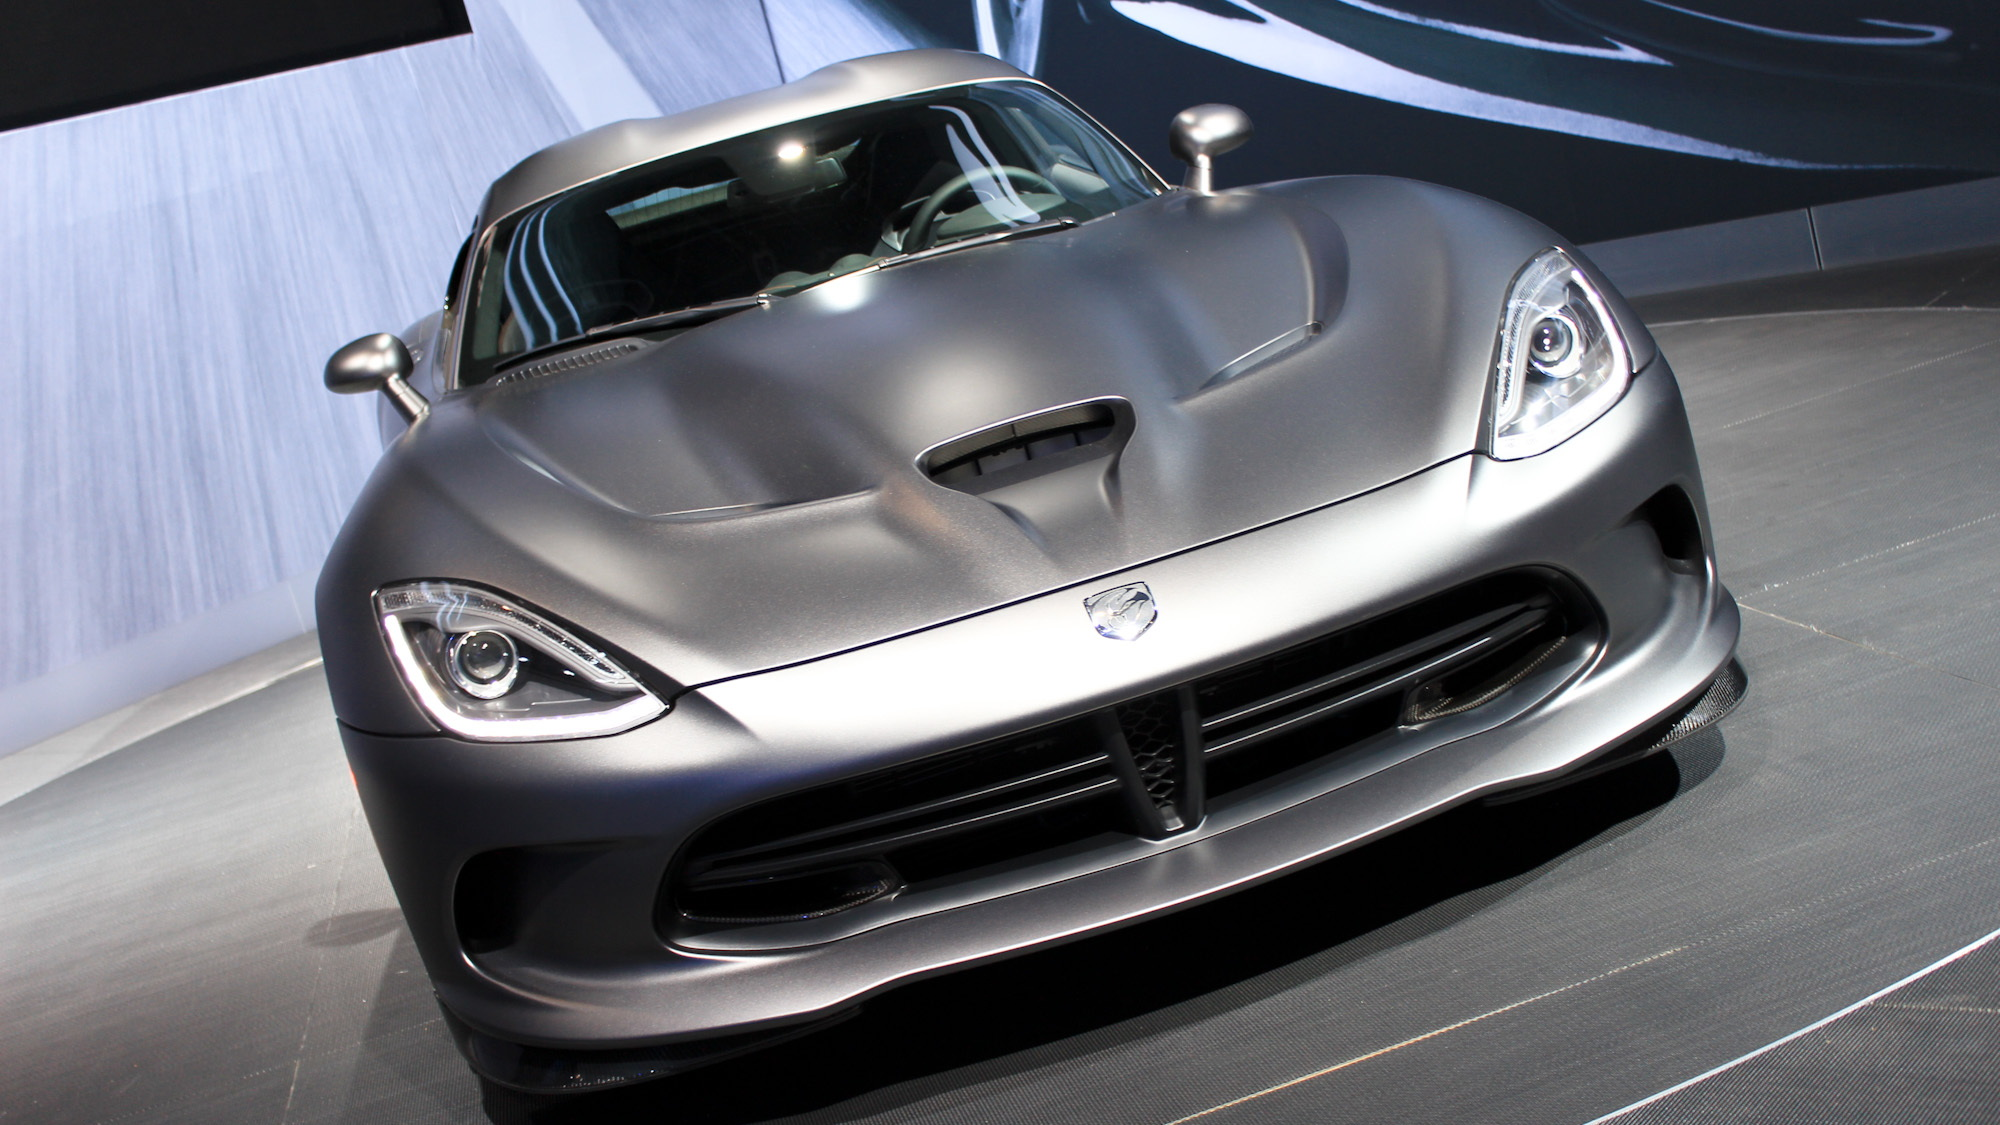 2014 SRT Viper Time Attack Anodized Carbon Special Edition Package